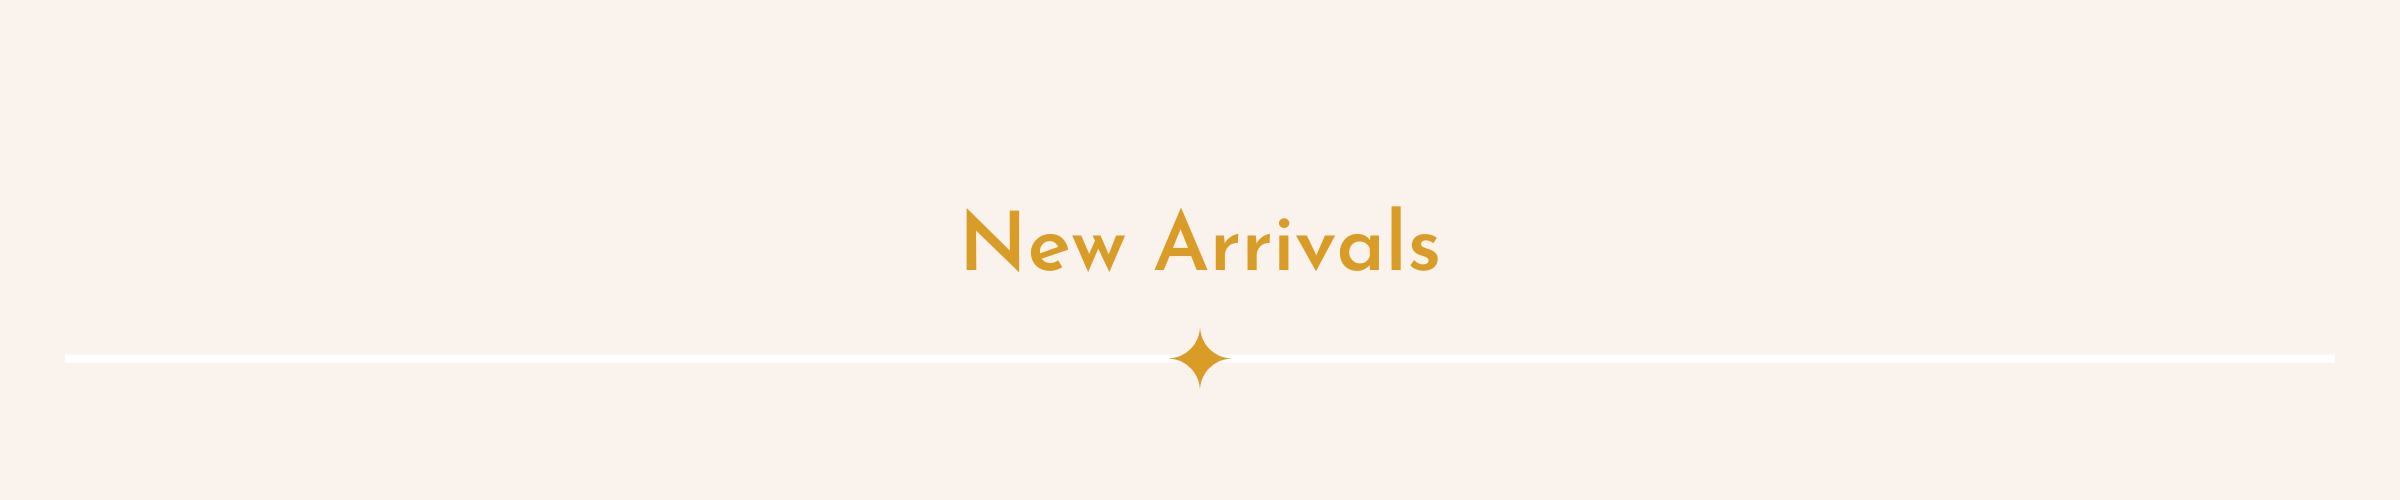 New Arrivals of Laser cut goods & gifts for any occasion